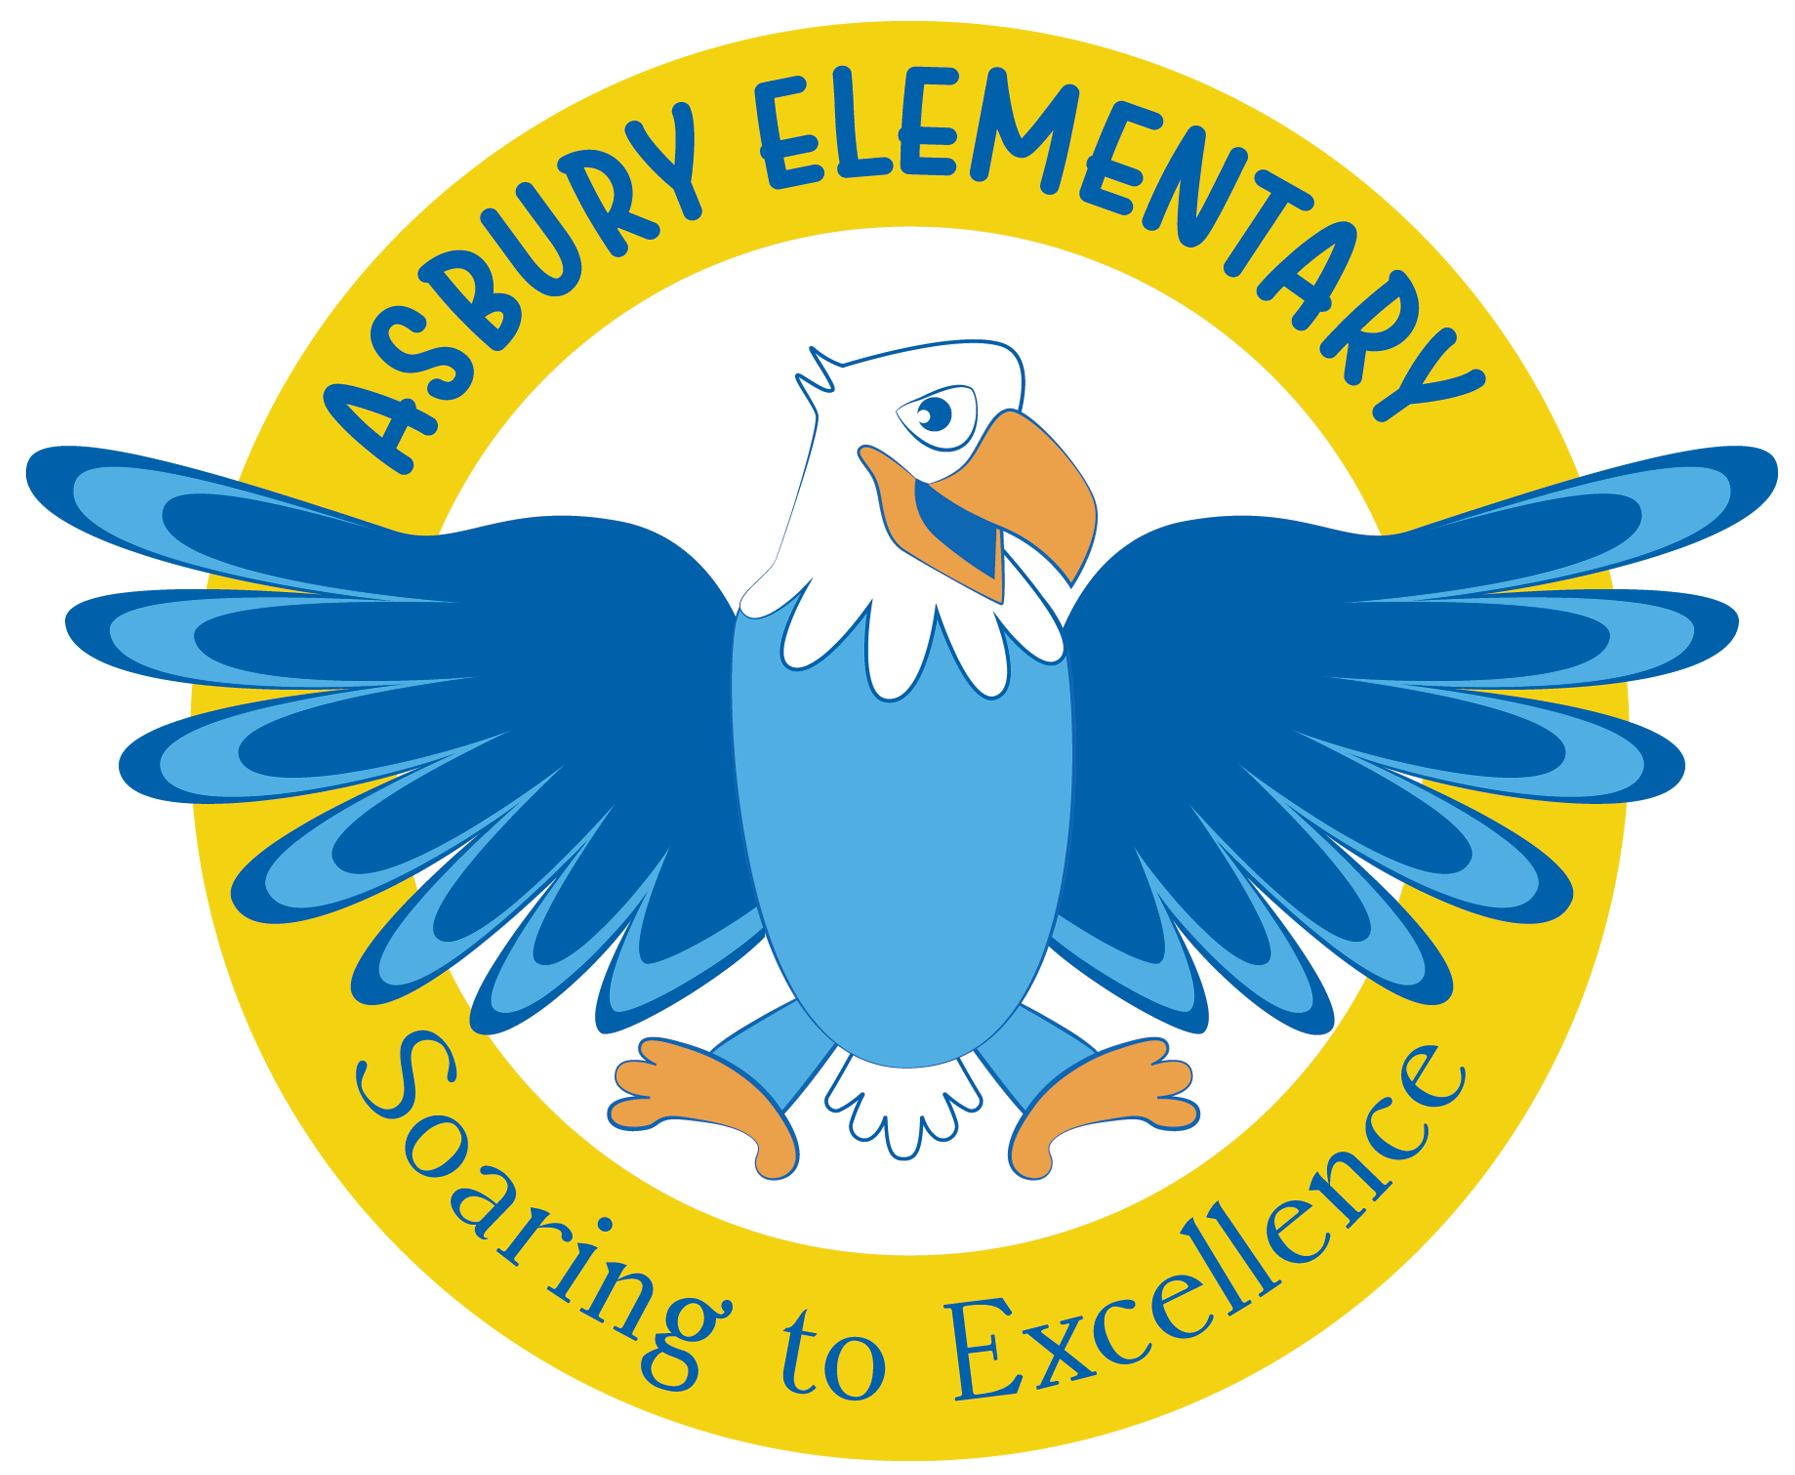 Asbury Elementary Soaring To Excellence